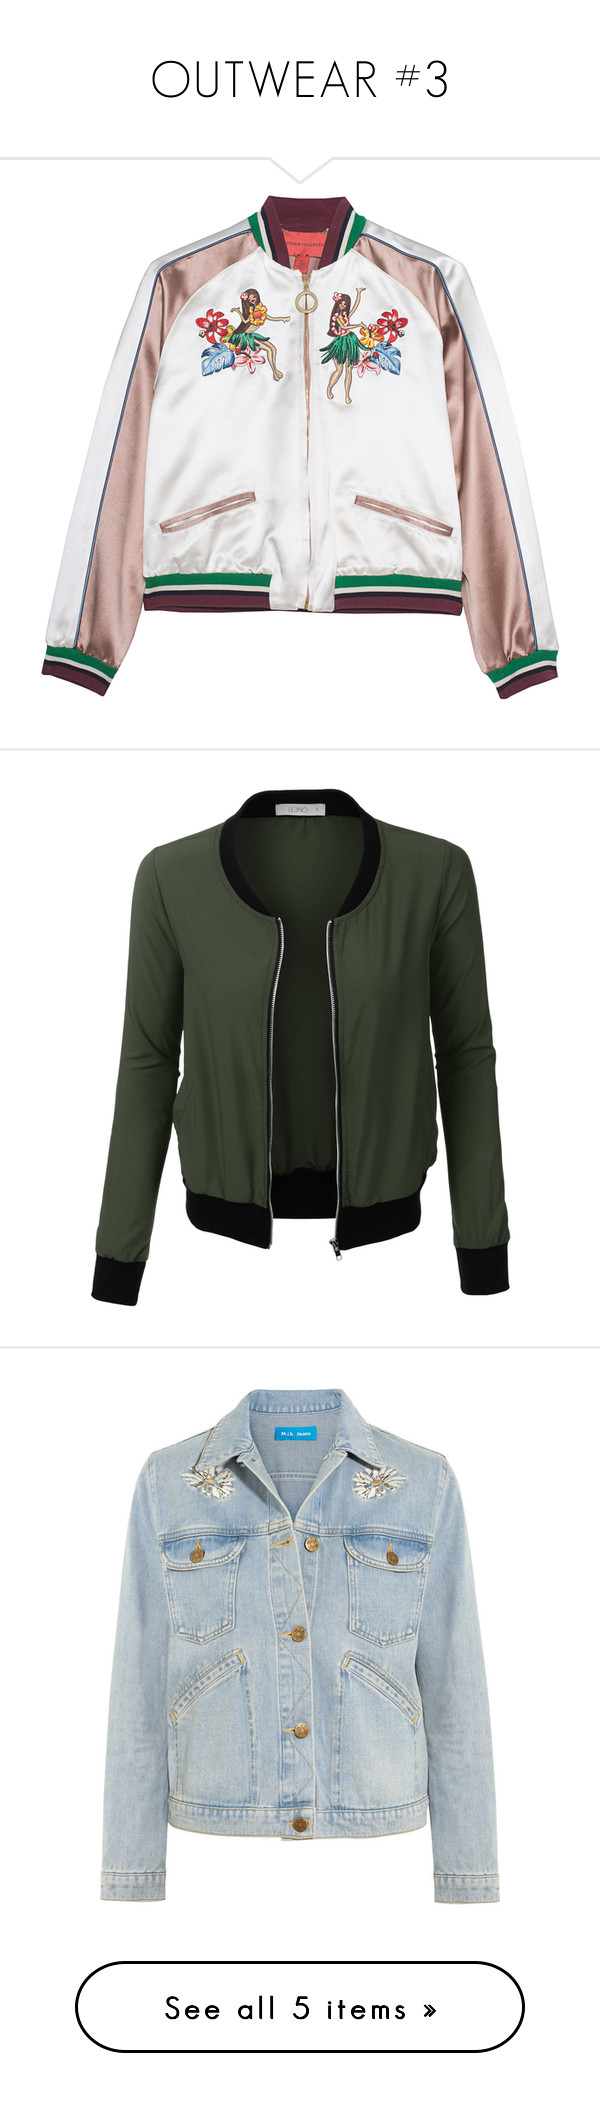 """""""OUTWEAR #3"""" by alinnas ❤ liked on Polyvore featuring outerwear, jackets, coats, coats & jackets, cropped jacket, 3/4 sleeve jacket, cropped bomber jacket, slim fit jacket, blouson jacket and flight jacket"""